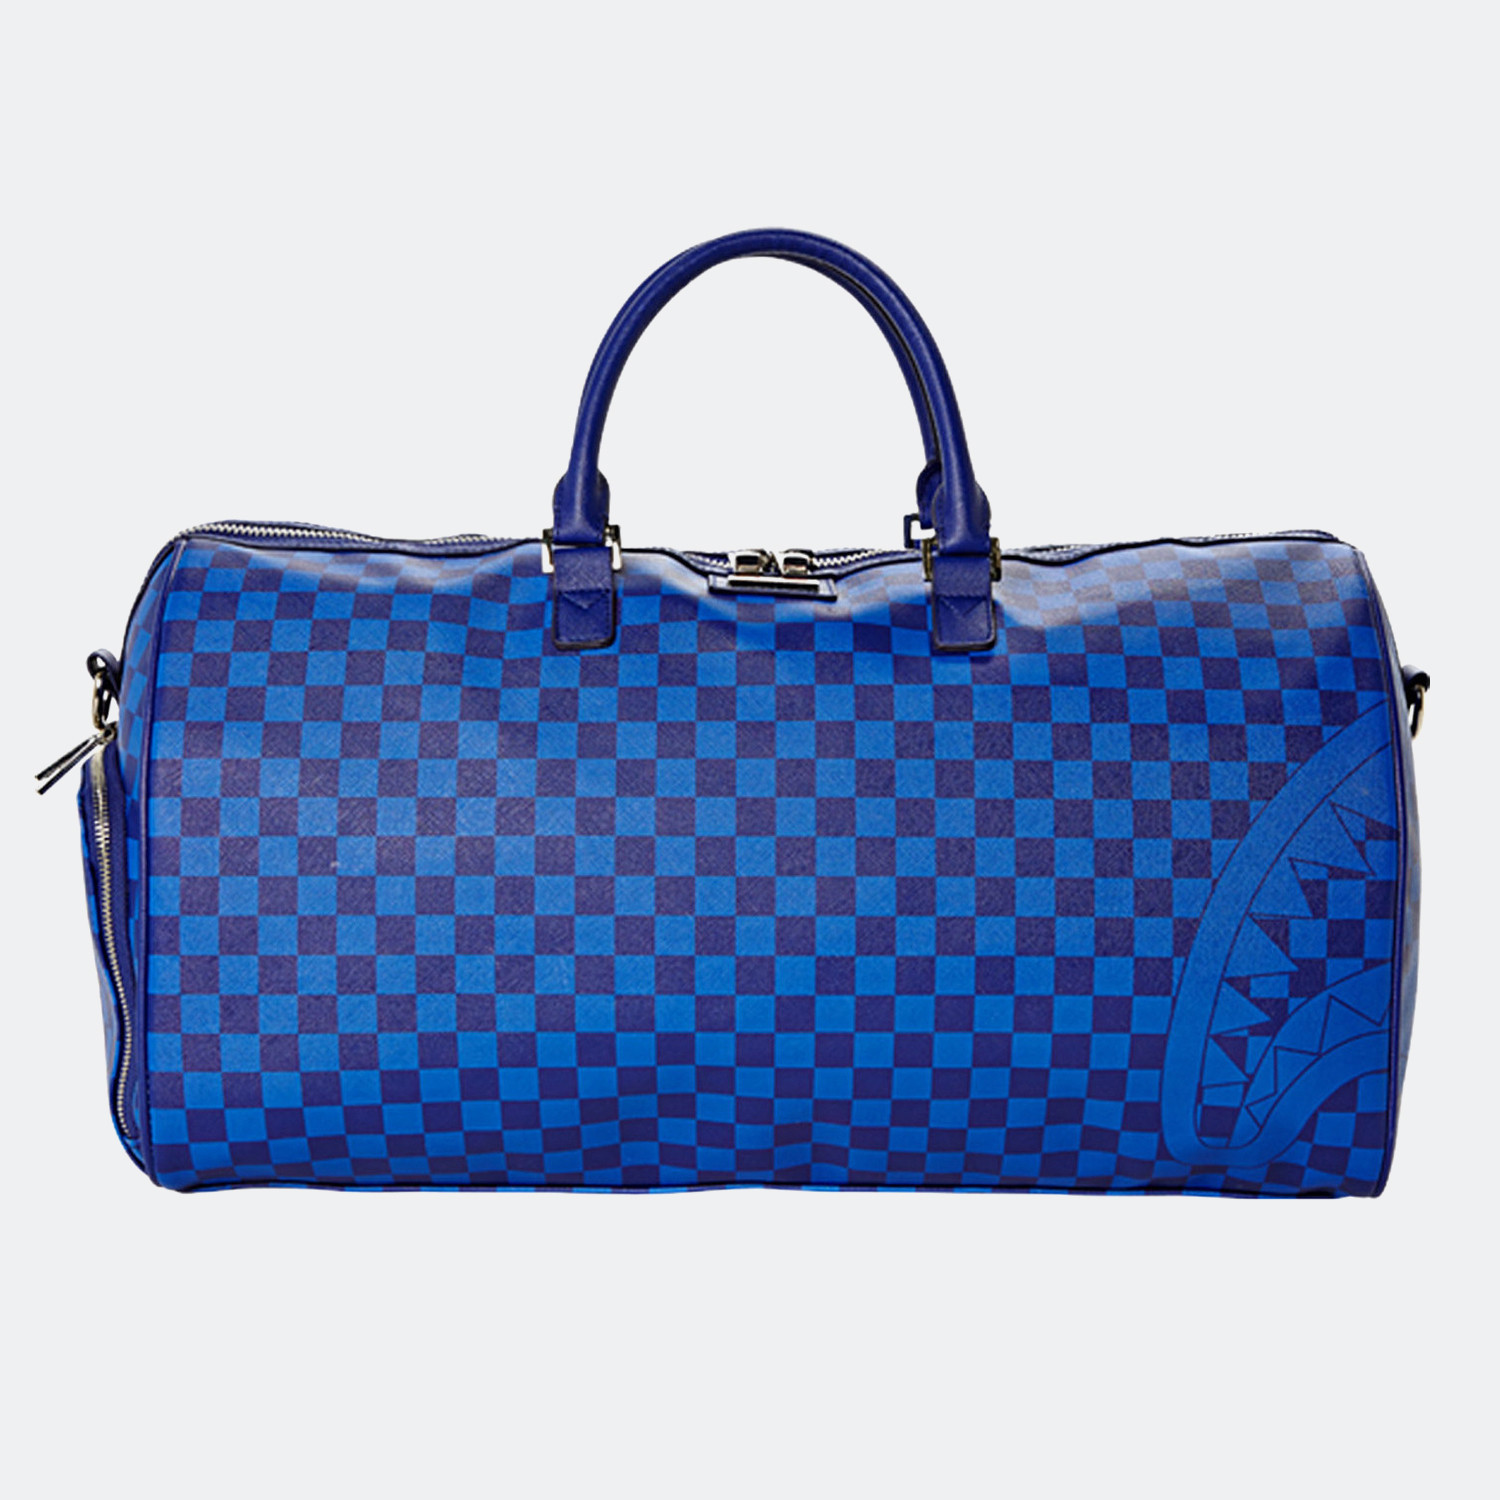 Sprayground Sharks In Paris Duffle: Royal Blue Τσάντα Ταξιδιού (9000053761_1906)